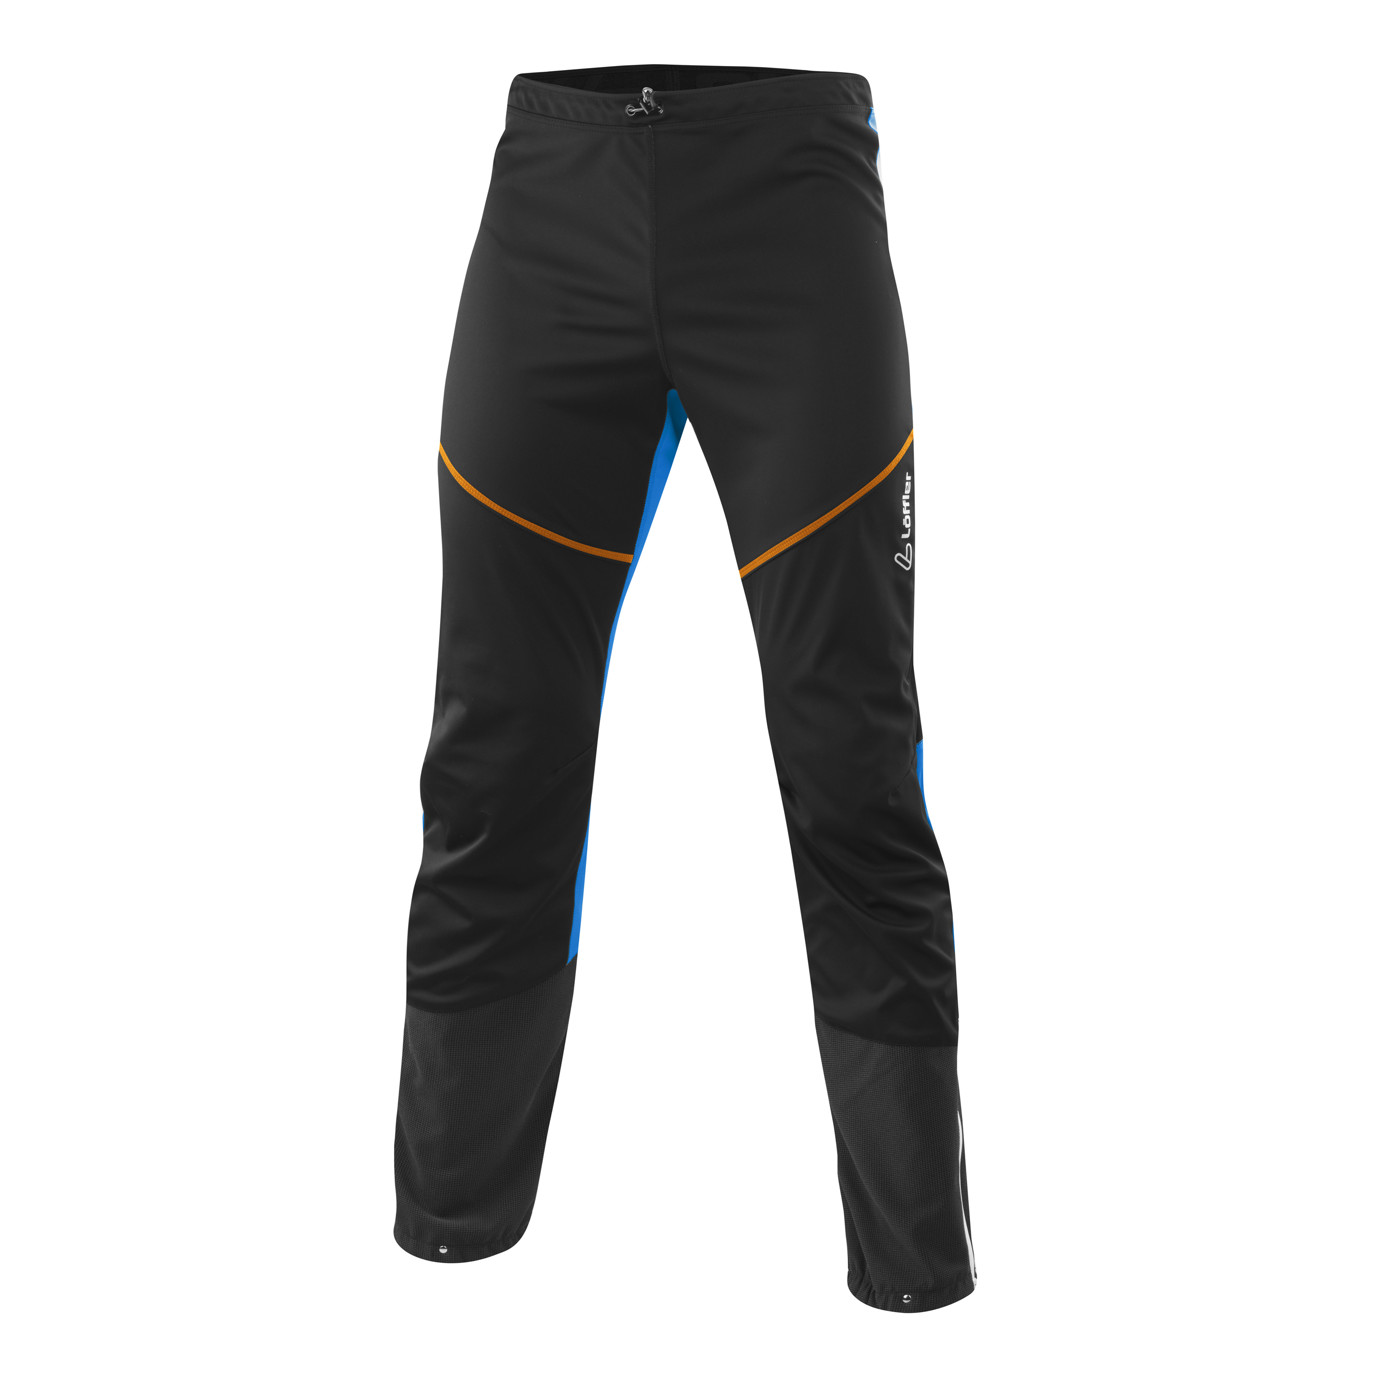 LÖFFLER TOURENHOSE SPEED WS LIGHT - Herren